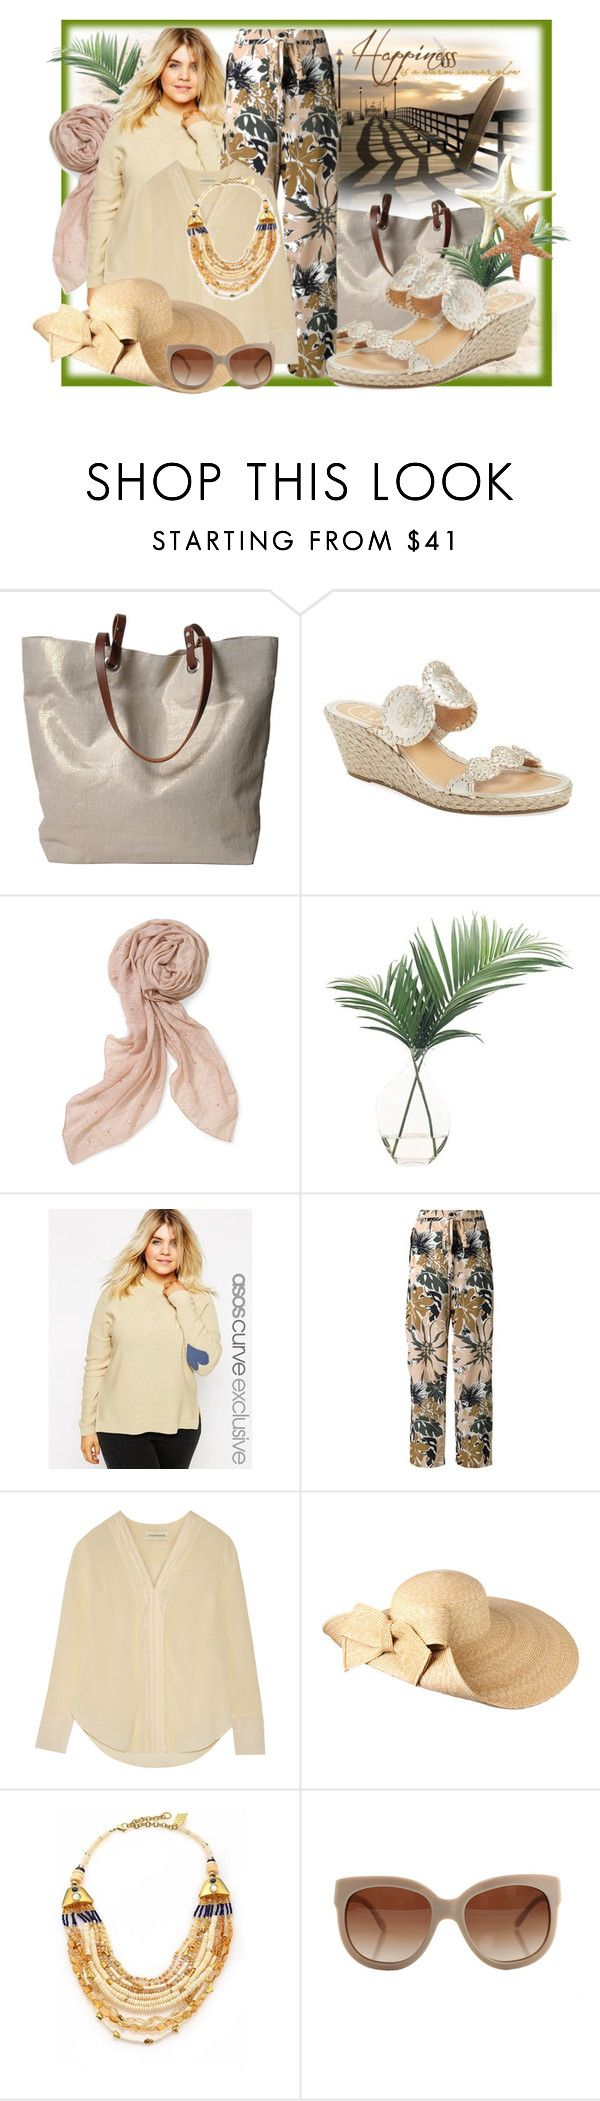 """Сontemplation"" by tasha1973 ❤ liked on Polyvore featuring Independent Reign, Jack Rogers, Stella & Dot, NDI, ASOS Curve, rag & bone, By Malene Birger, Helene Berman, Lizzie Fortunato and STELLA McCARTNEY"